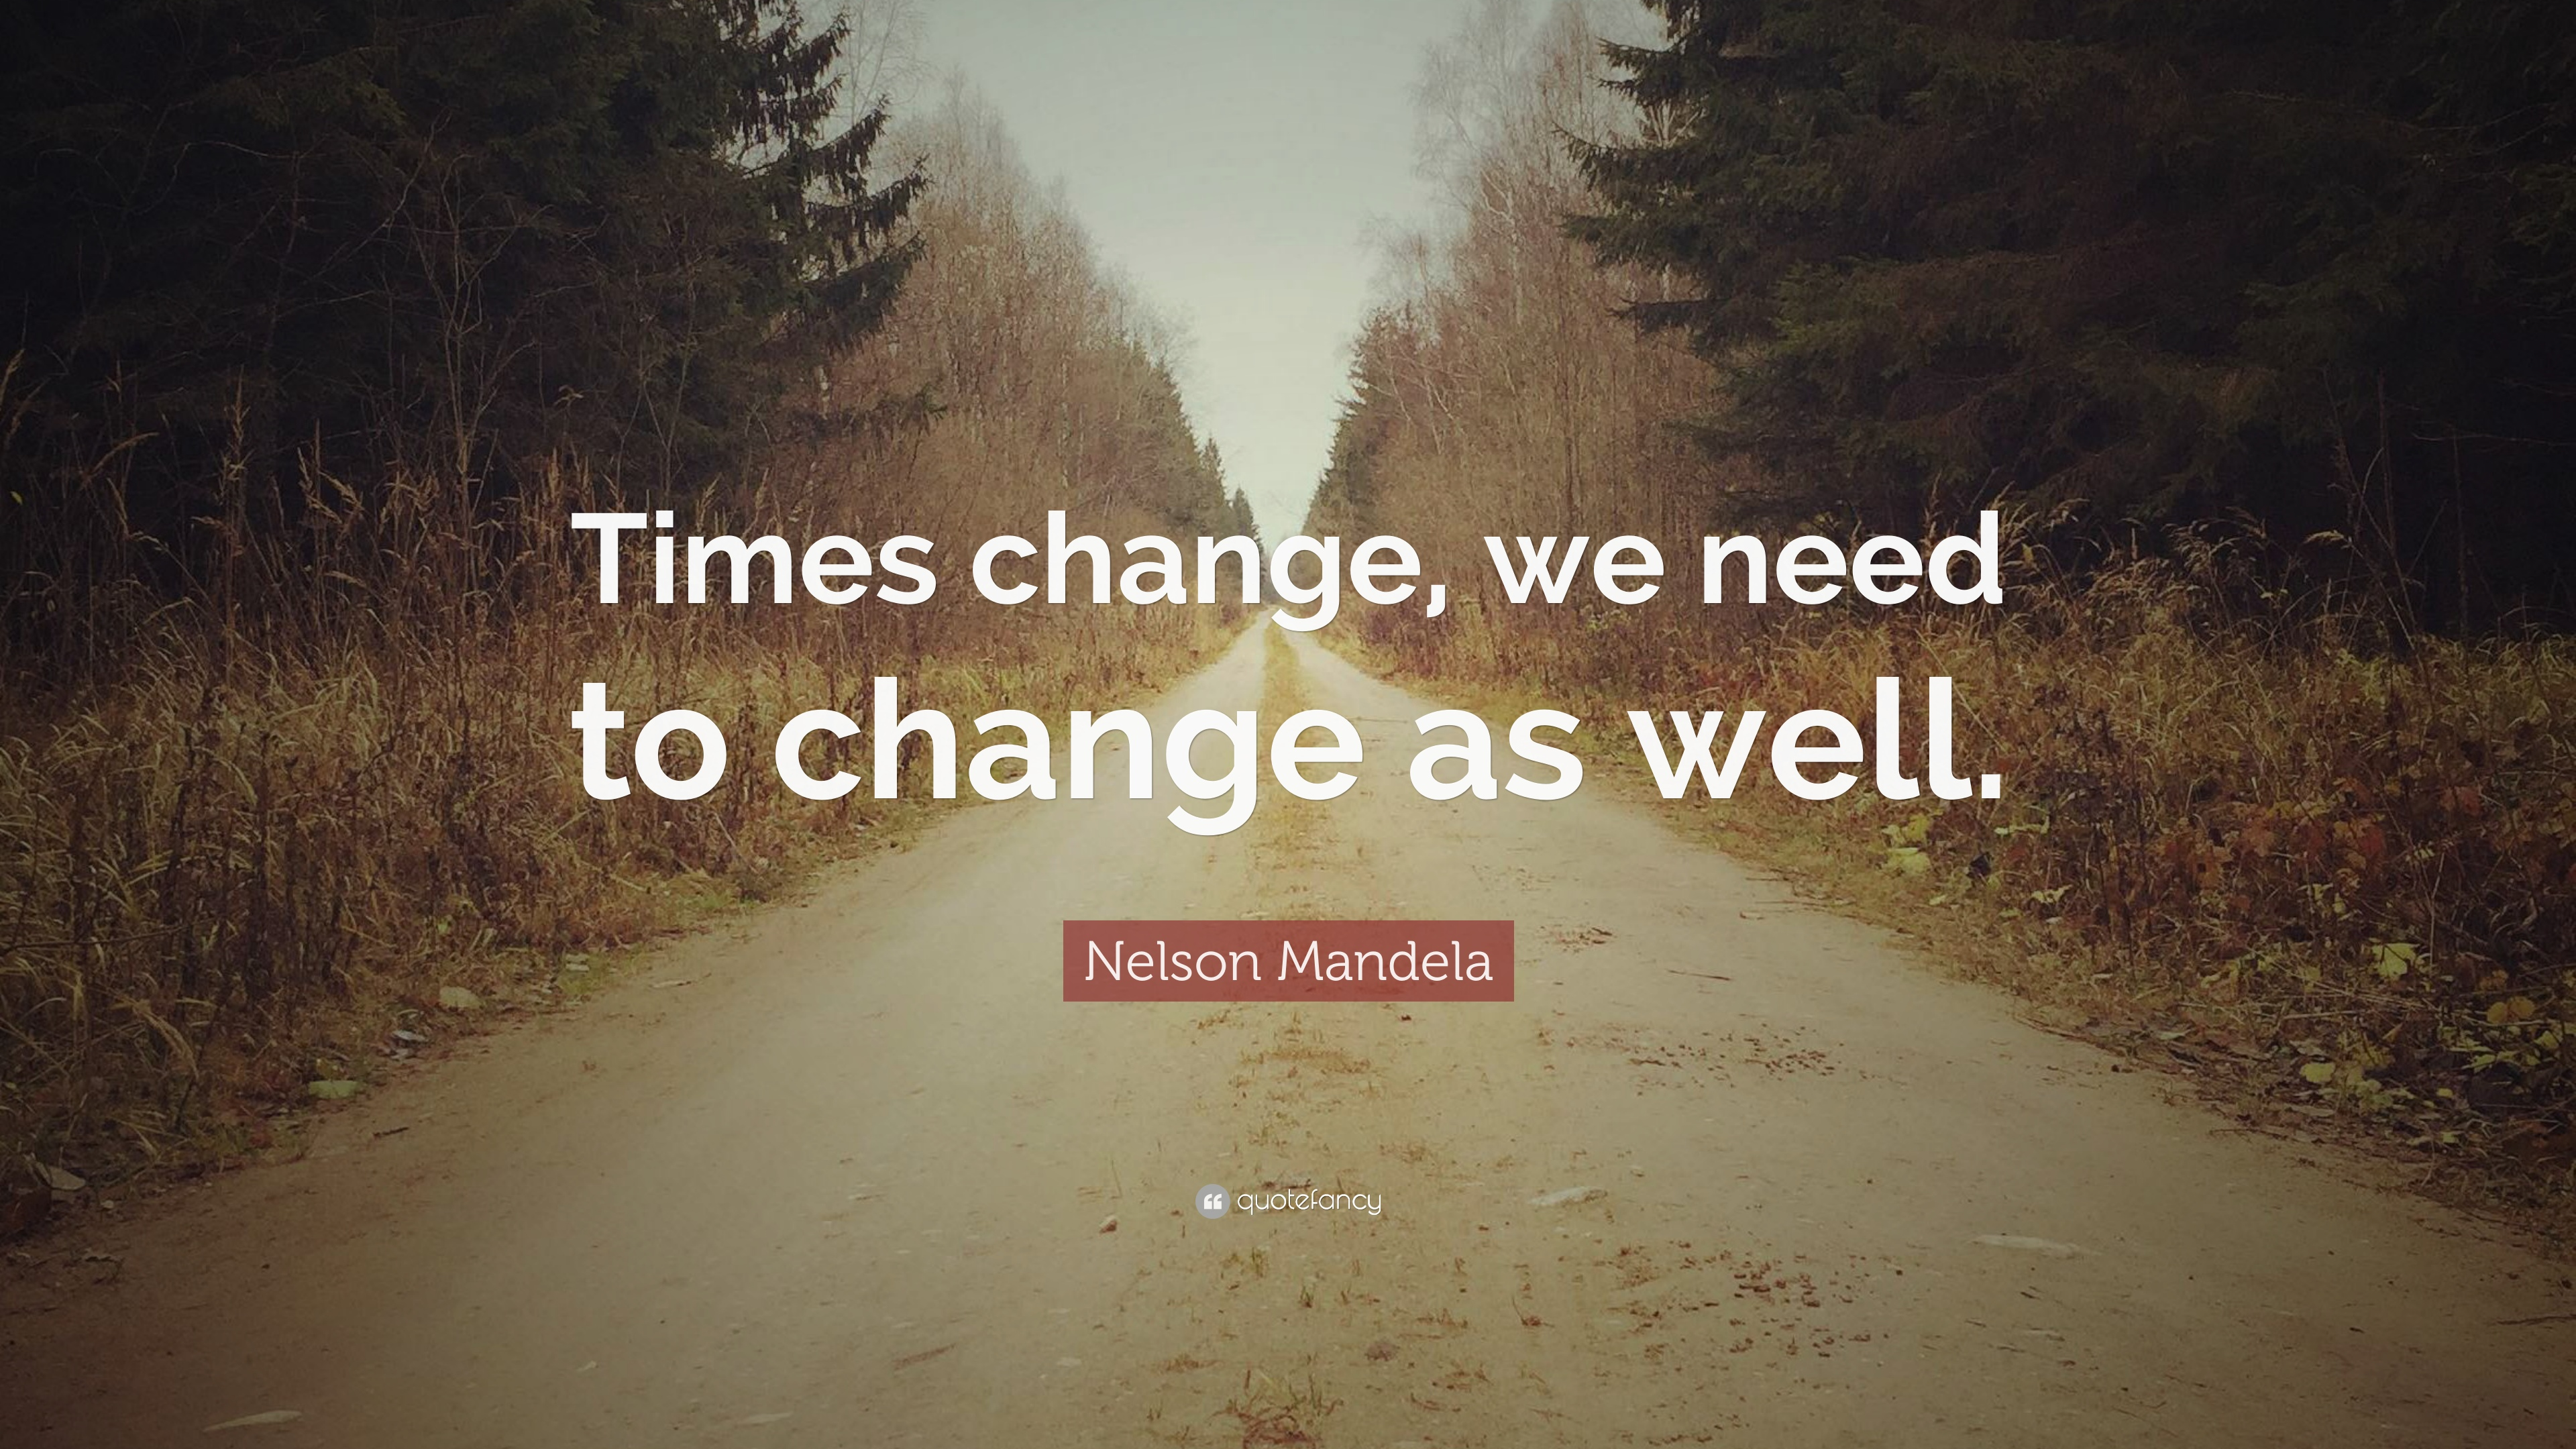 change nelson mandela and motor Nelson mandela, the leader of south africa who was imprisoned for 27 years for his efforts to bring about social change, died on december 5, 2013, at the [.